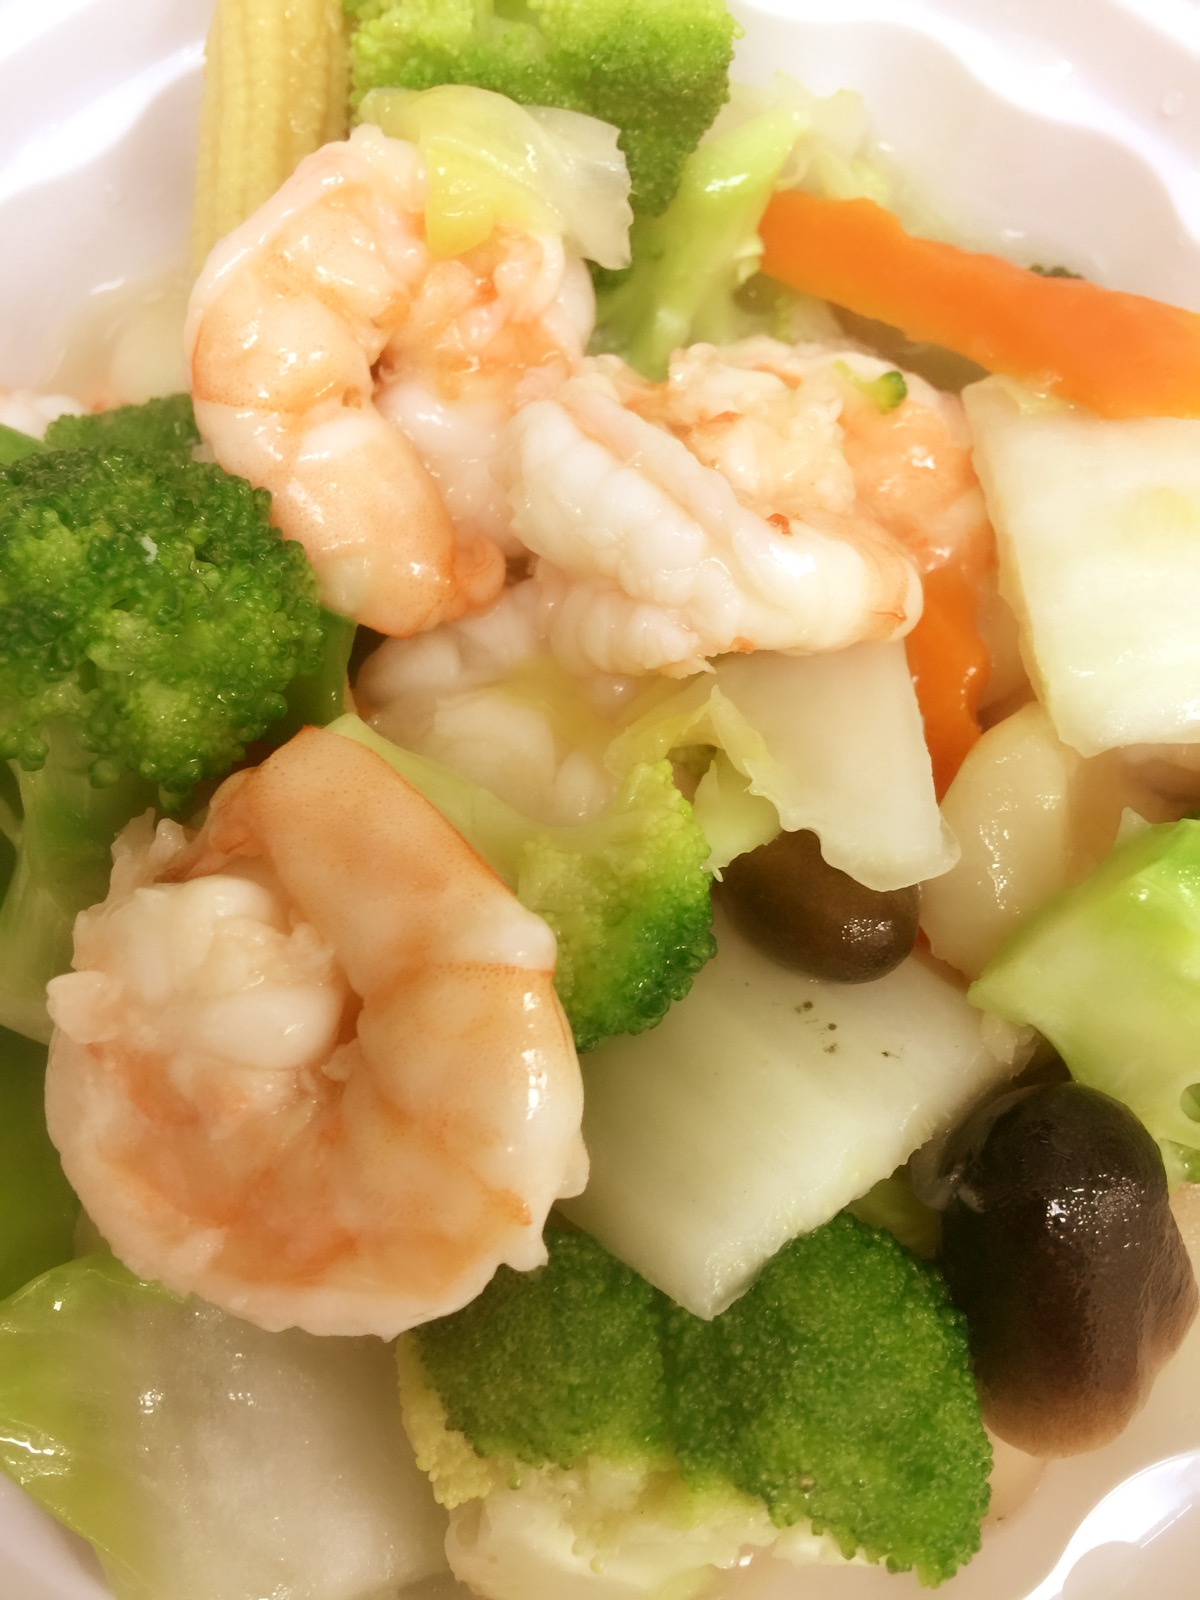 Shrimp with Mixed Vegetables Image